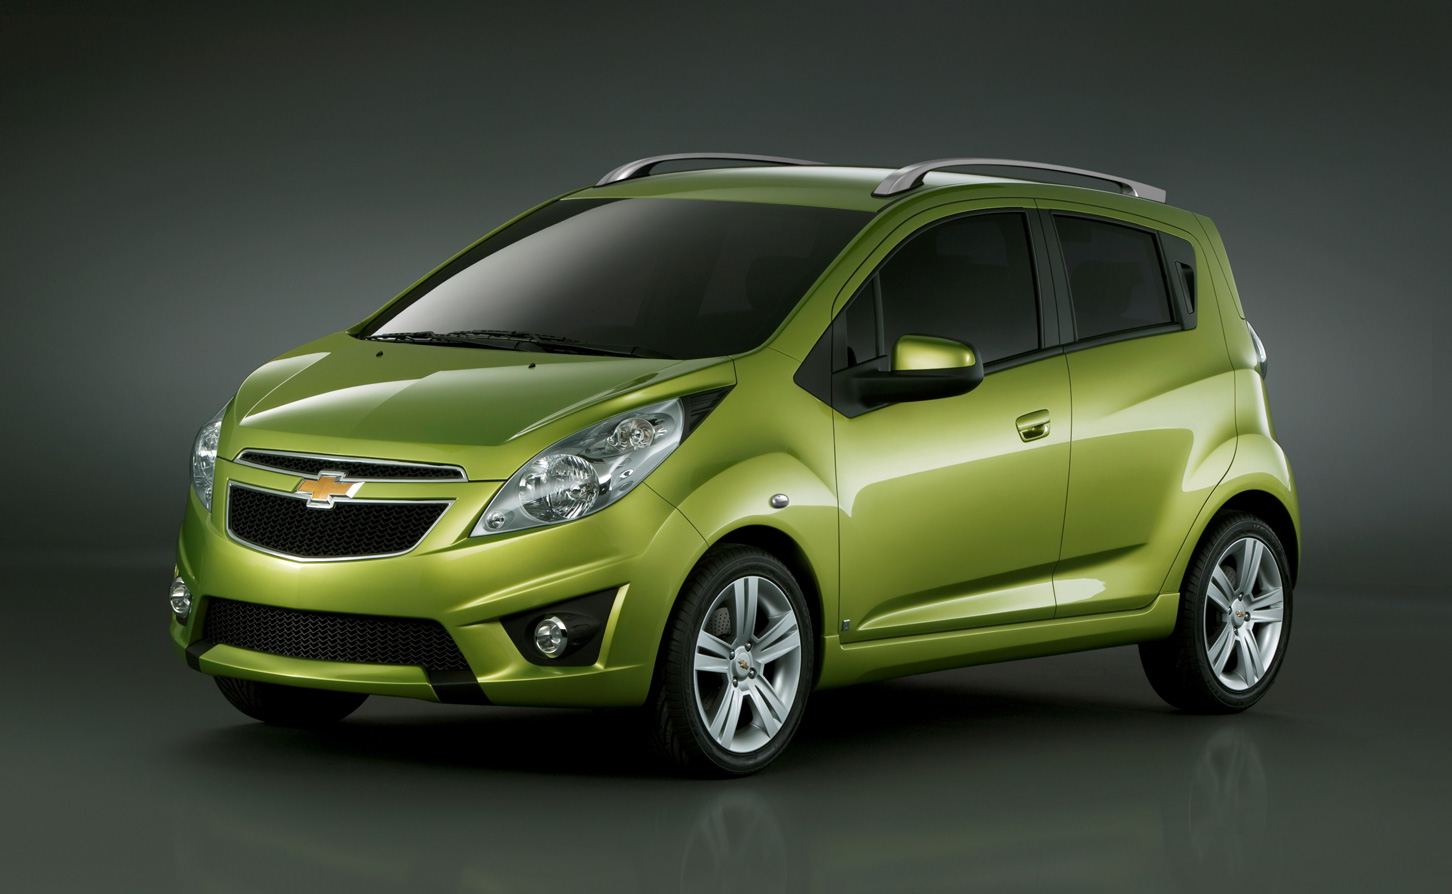 Gm Announces All Electric Chevy Spark Ev For 2013 Mobile